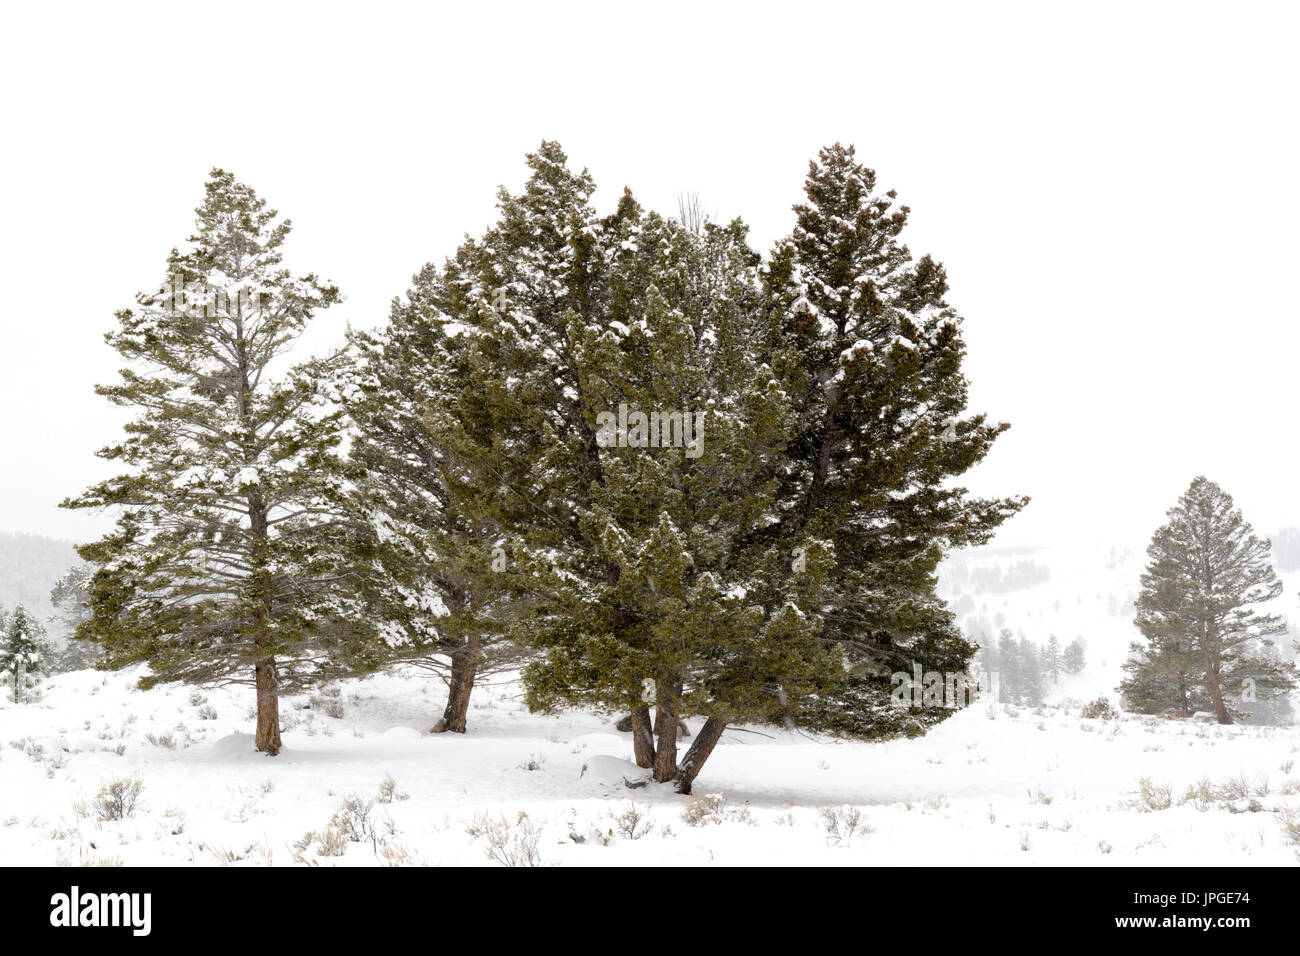 Landscape with pine trees during blizzard in winter, Yellowstone national park, Wyoming, Montana, USA. - Stock Image